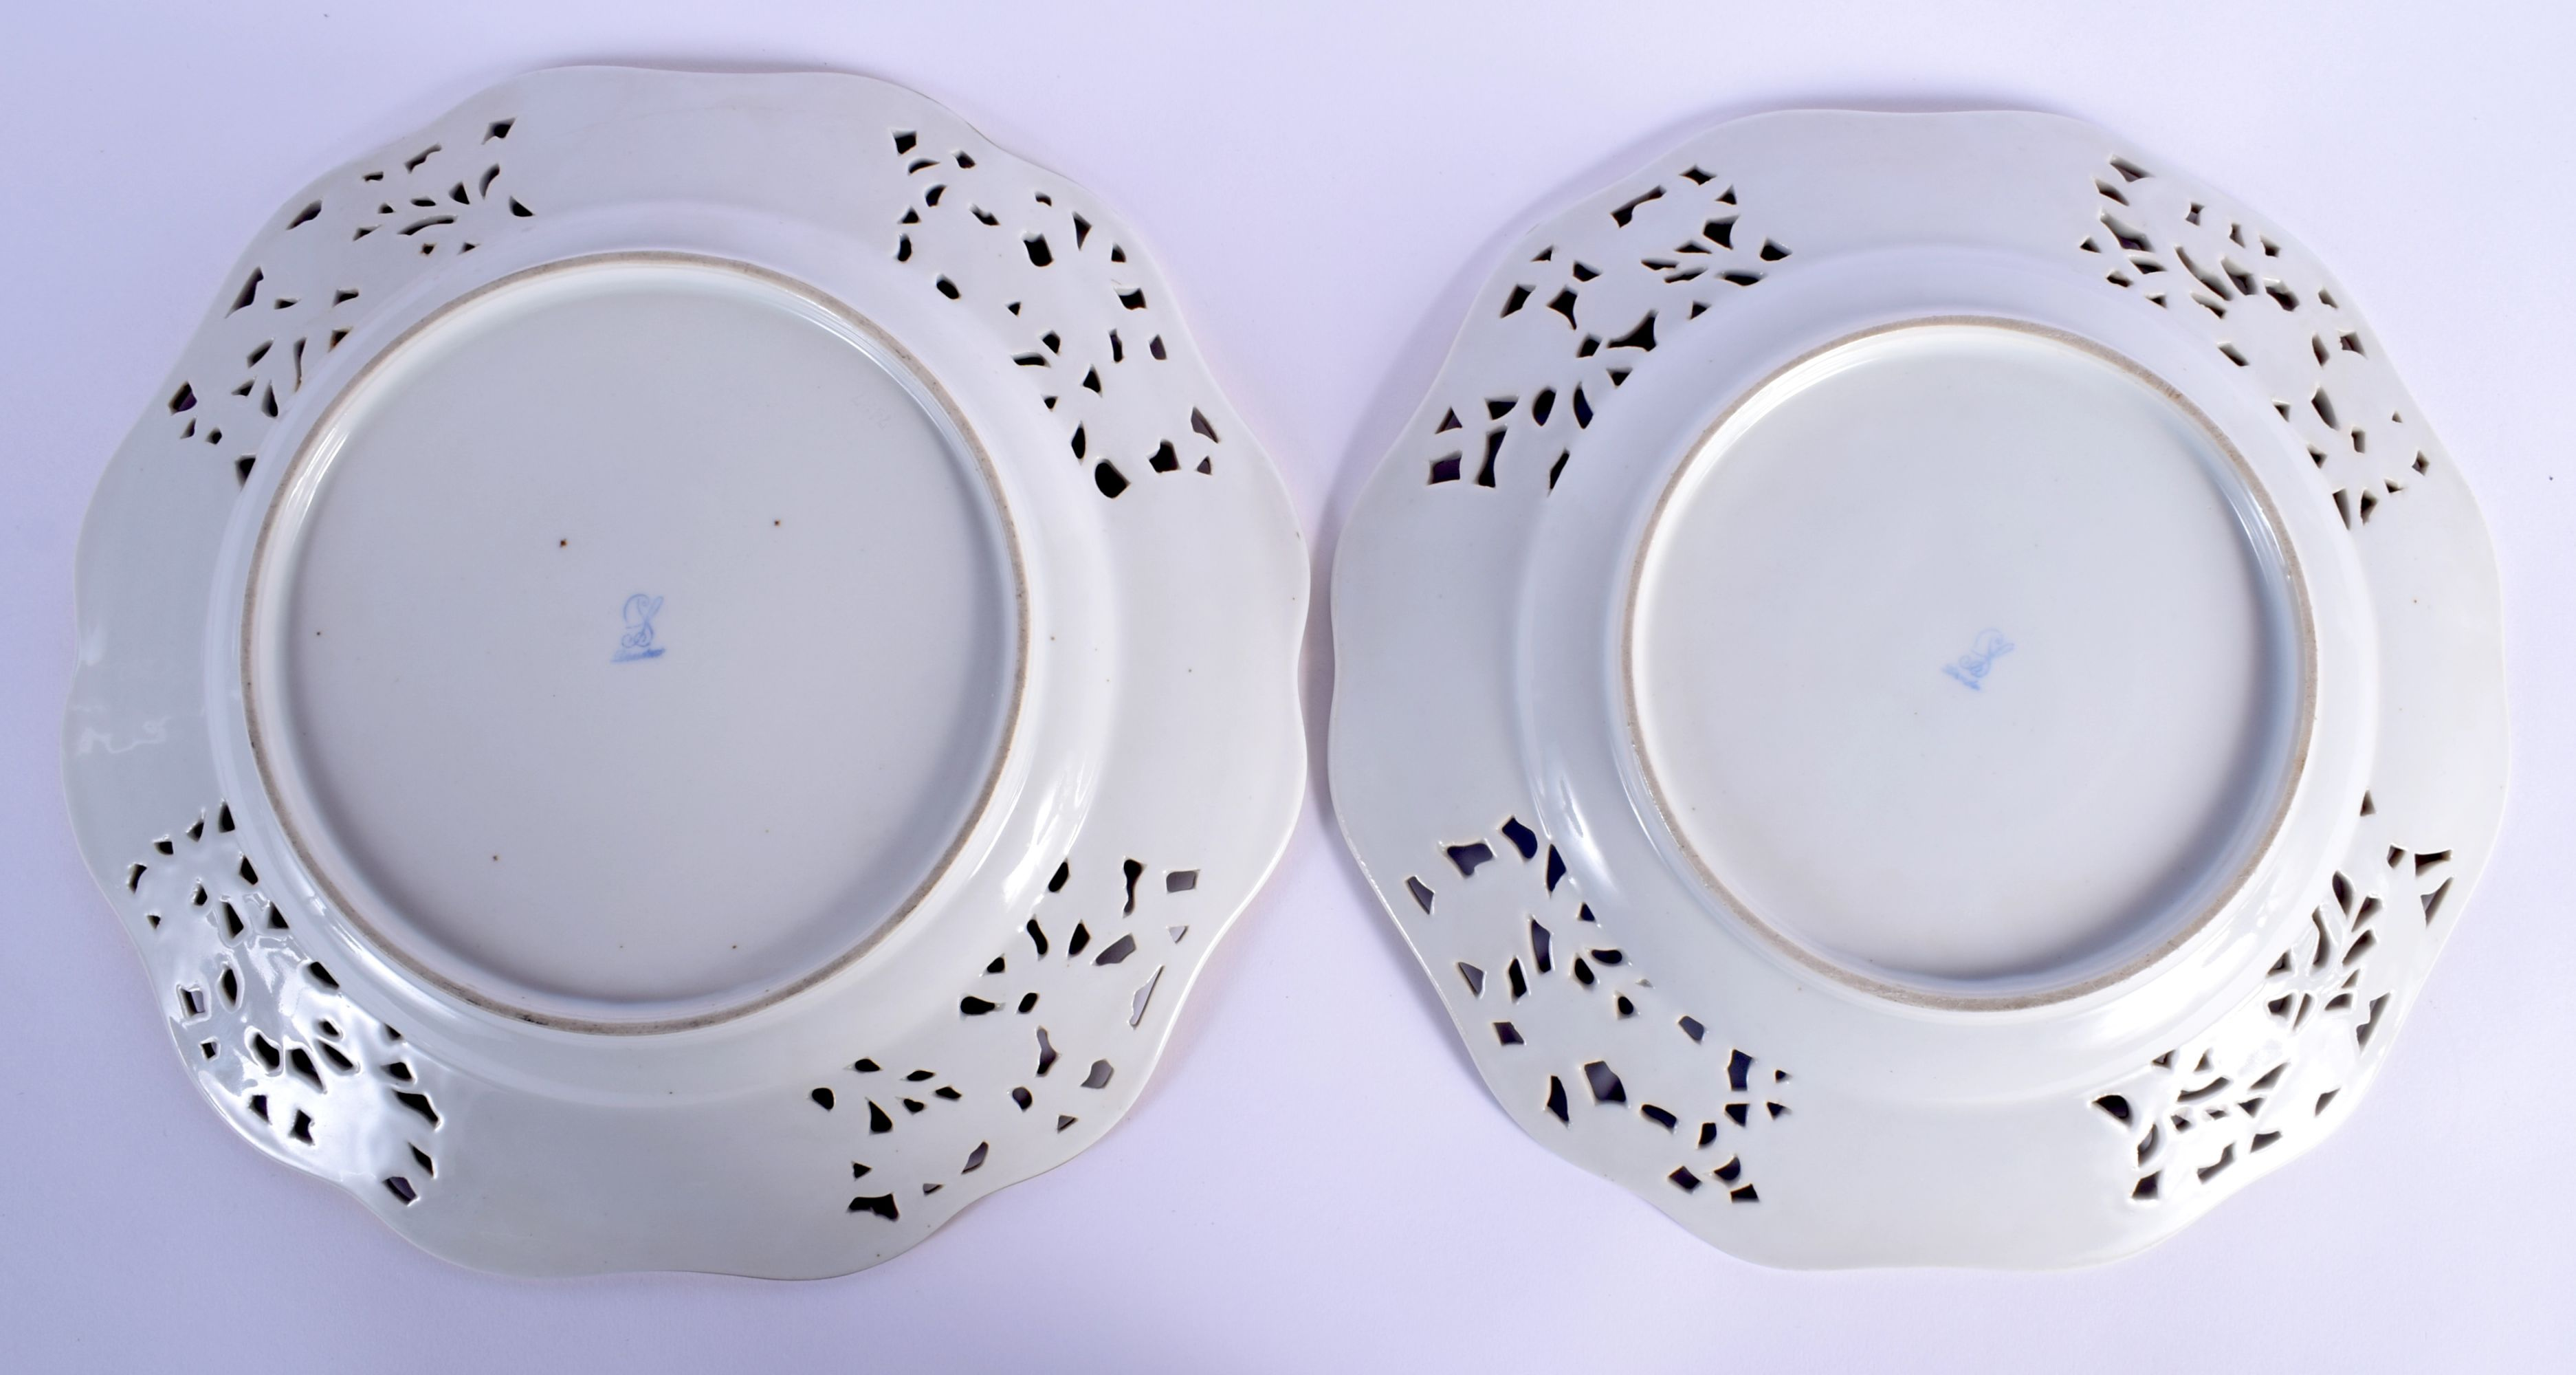 A PAIR OF EARLY 20TH CENTURY DRESDEN RETICULATED PORCELAIN PLATES painted with flowers. 26 cm wide. - Image 2 of 2